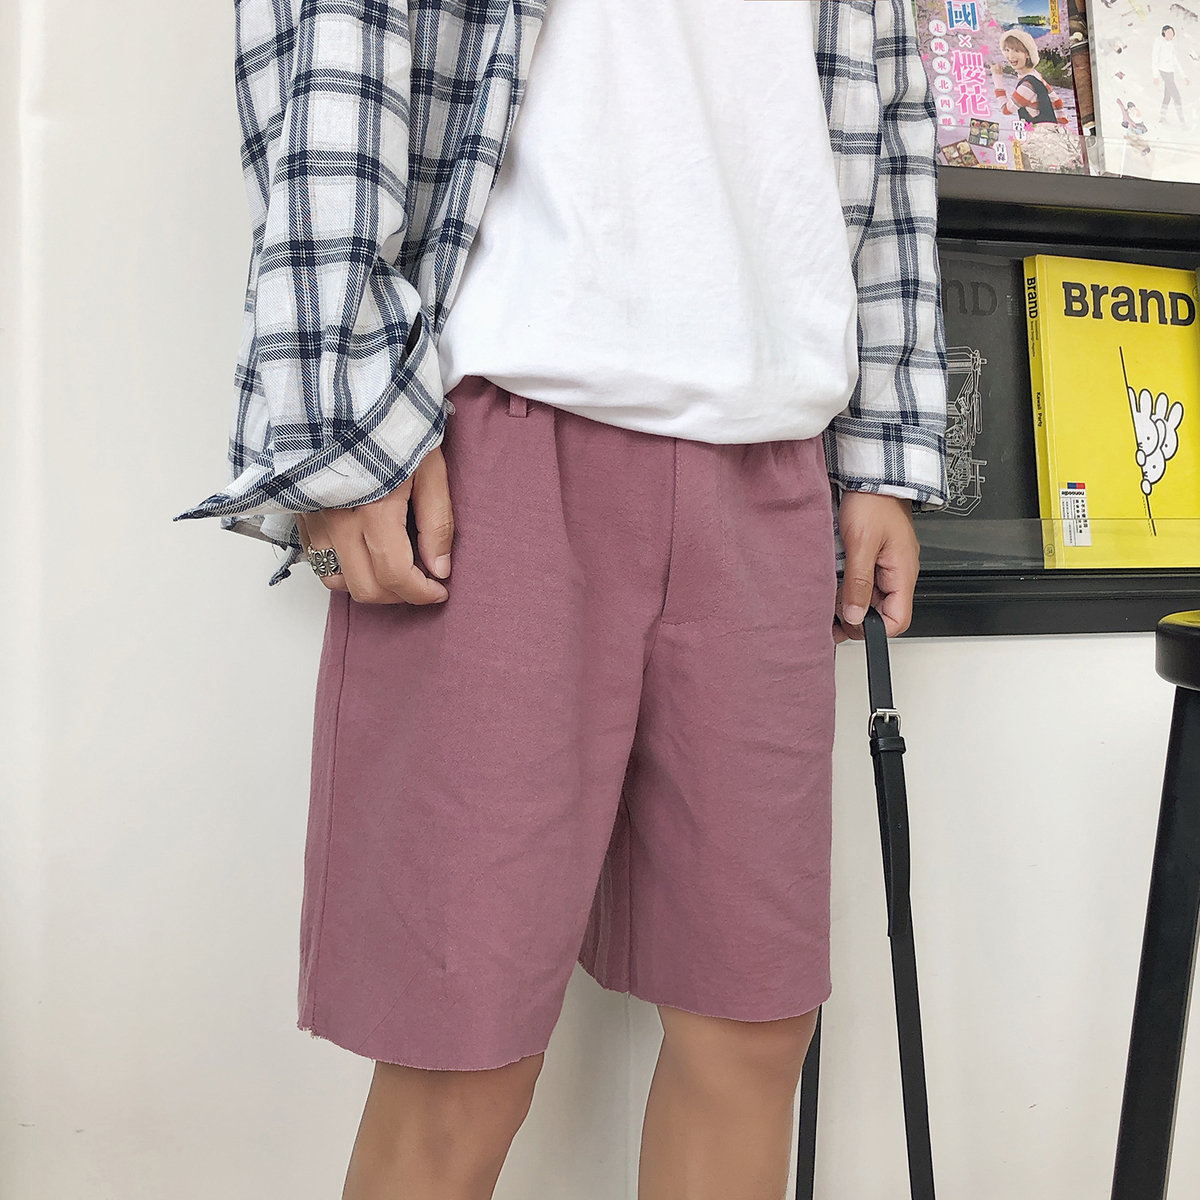 Summer 2018 New Fashion Mens Korean Style Youth Casual Shorts Tide Loose Black/Pink/khaki Color Haren Trousers Size M-2XL